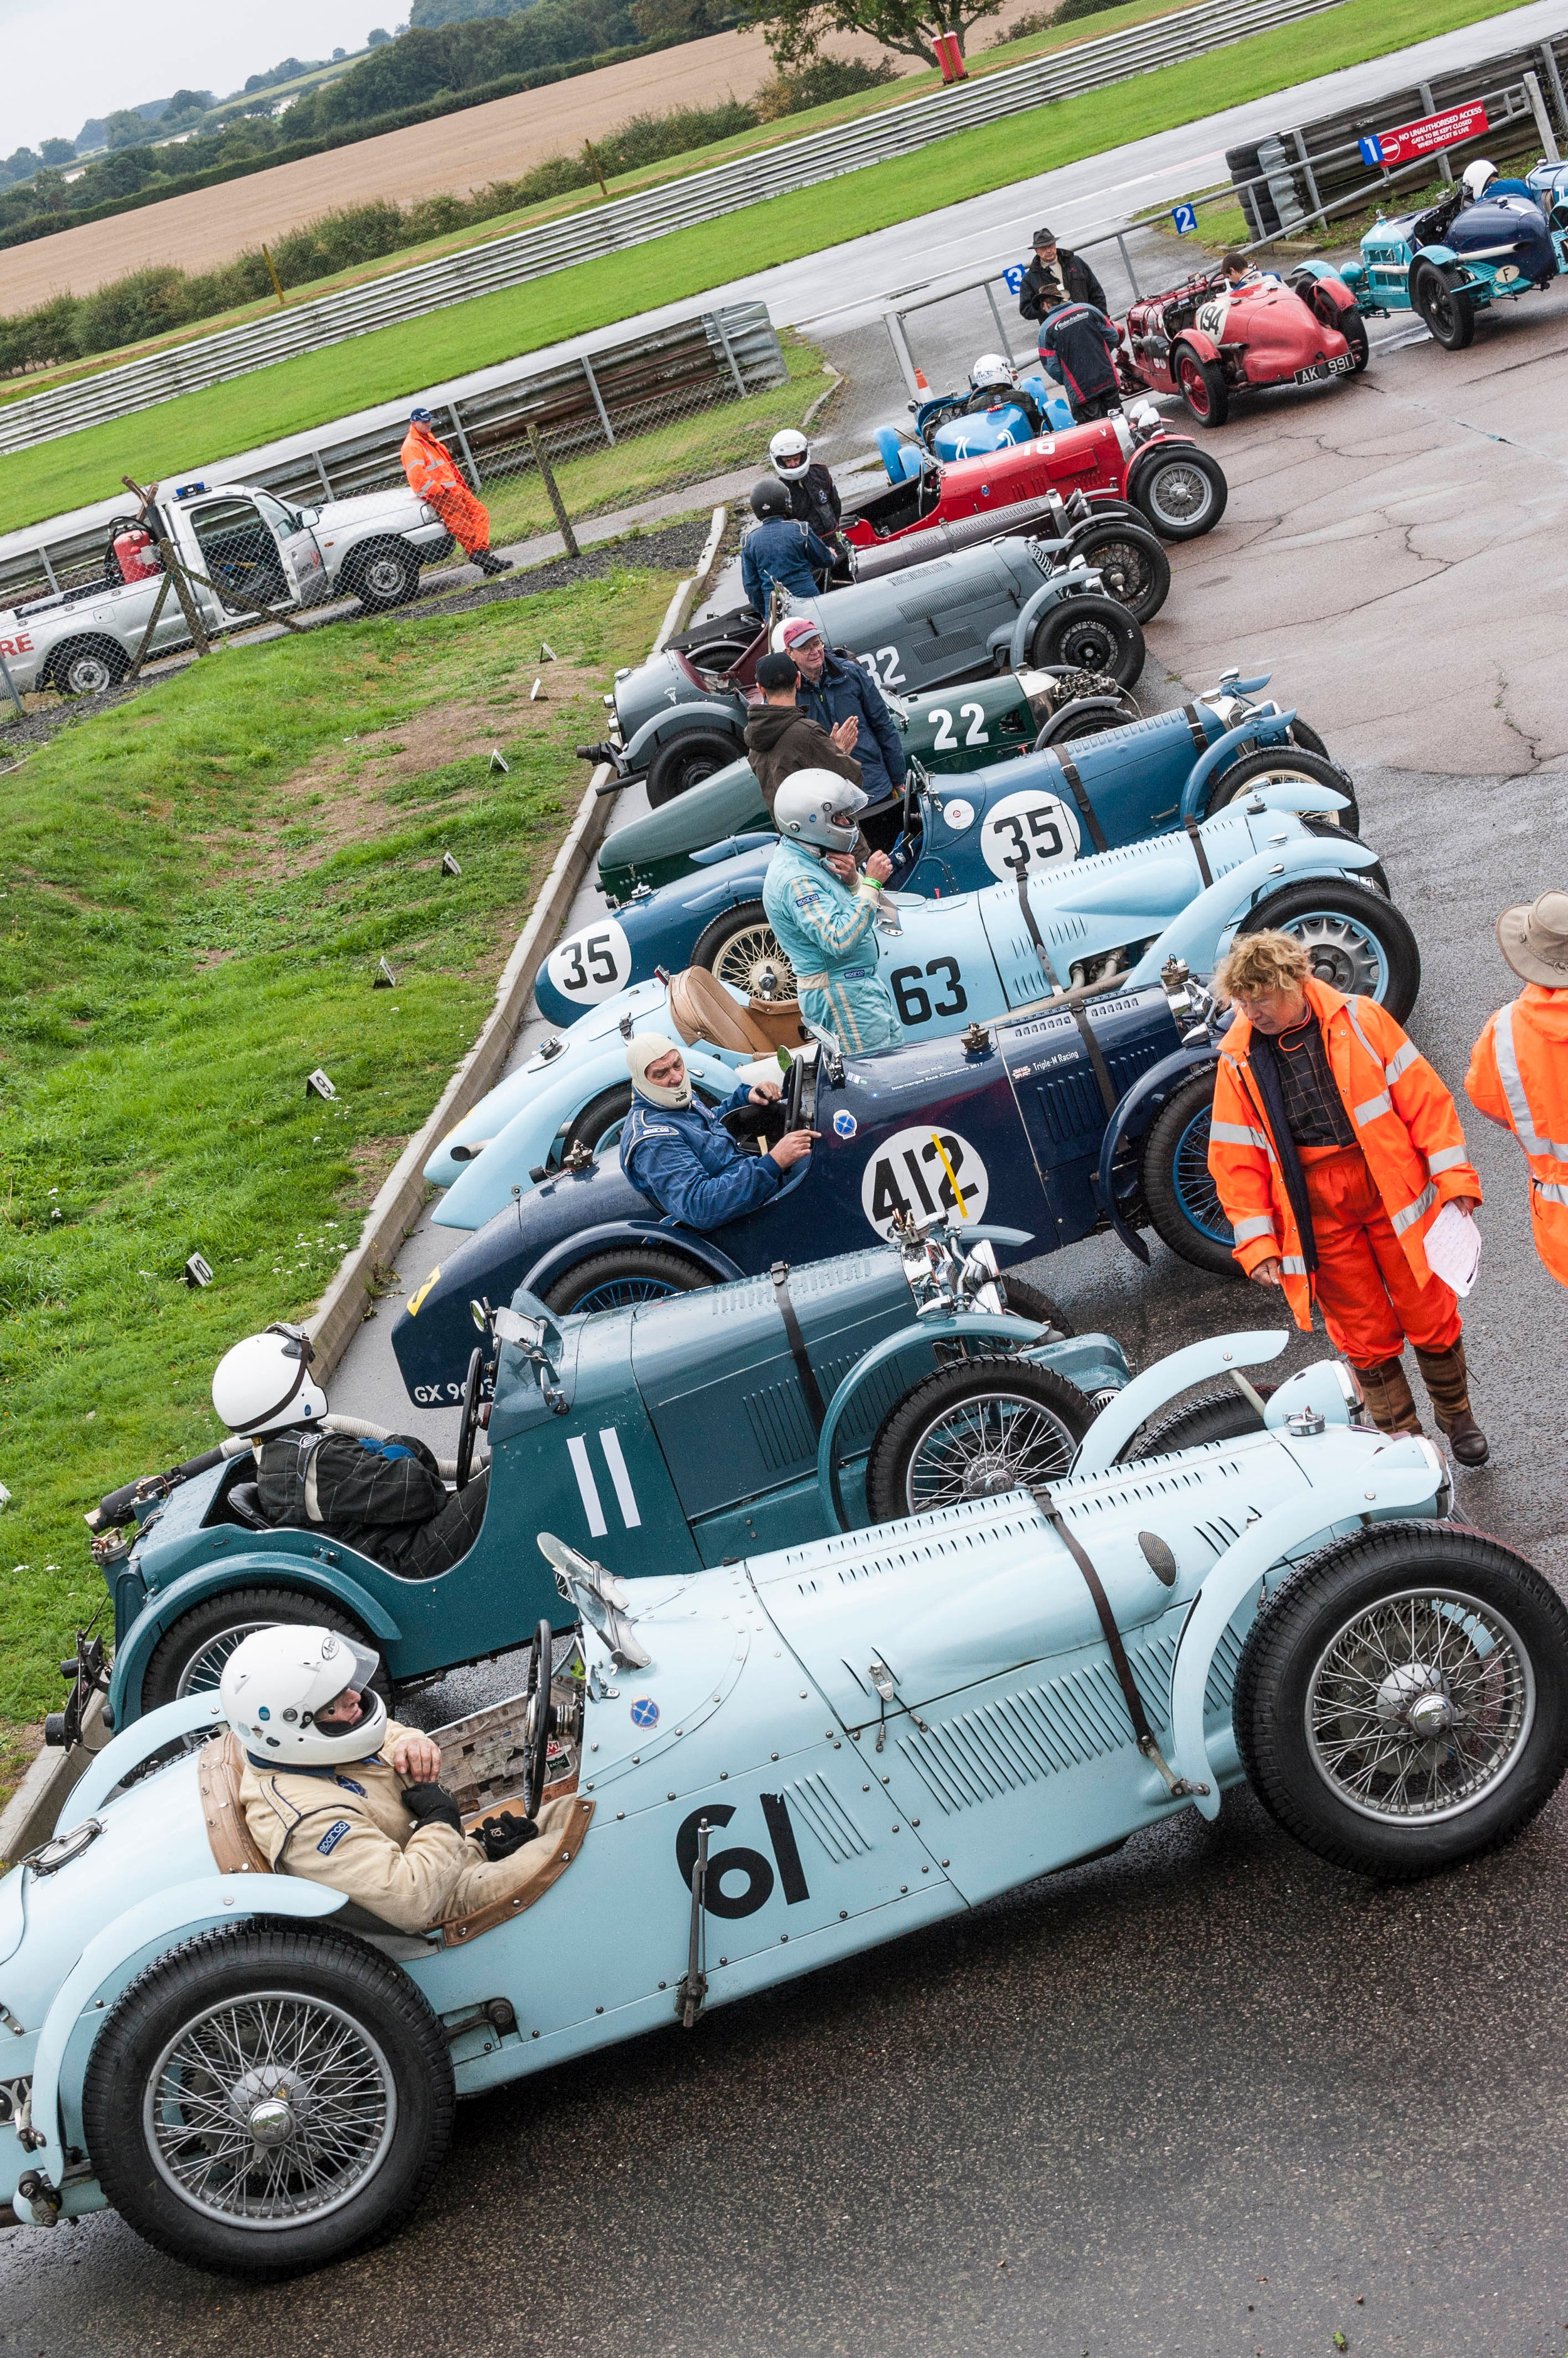 Le Patron in the foreground joins the combatants in assembly, hoping that the rain clouds will pass…………….. Peter McFadyen